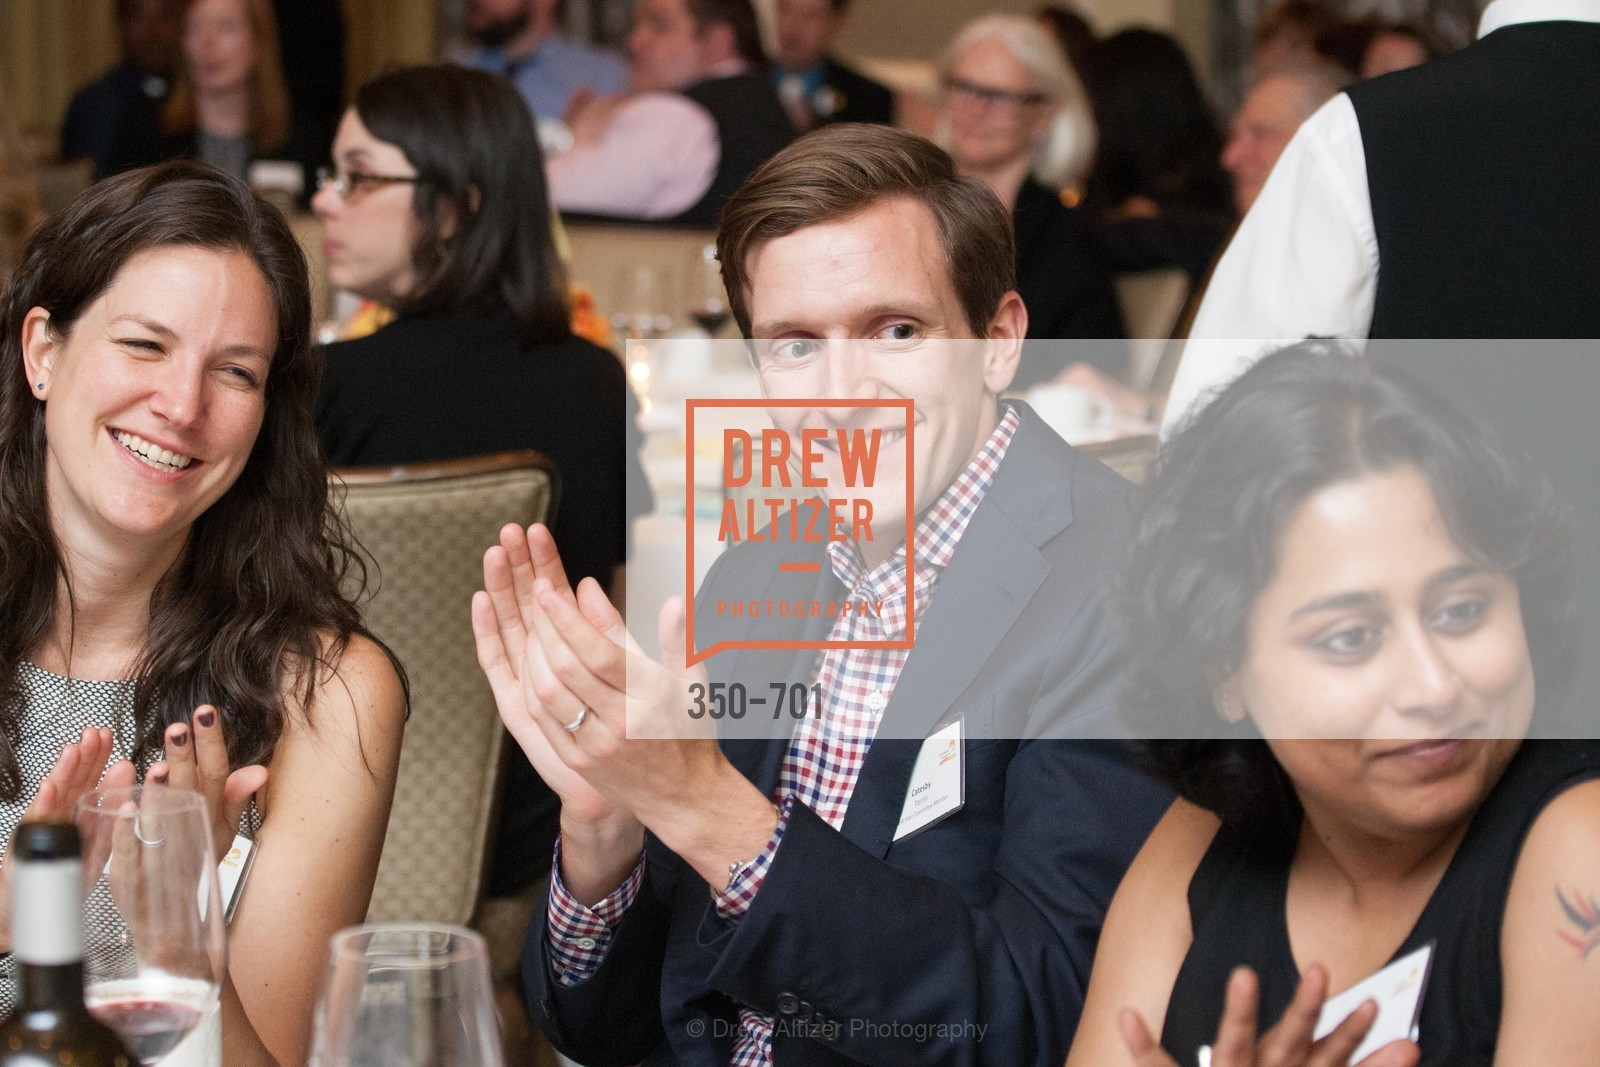 Catesby Perrin, SUMMER SEARCH San Francisco 25th Anniversary, US, May 7th, 2015,Drew Altizer, Drew Altizer Photography, full-service agency, private events, San Francisco photographer, photographer california